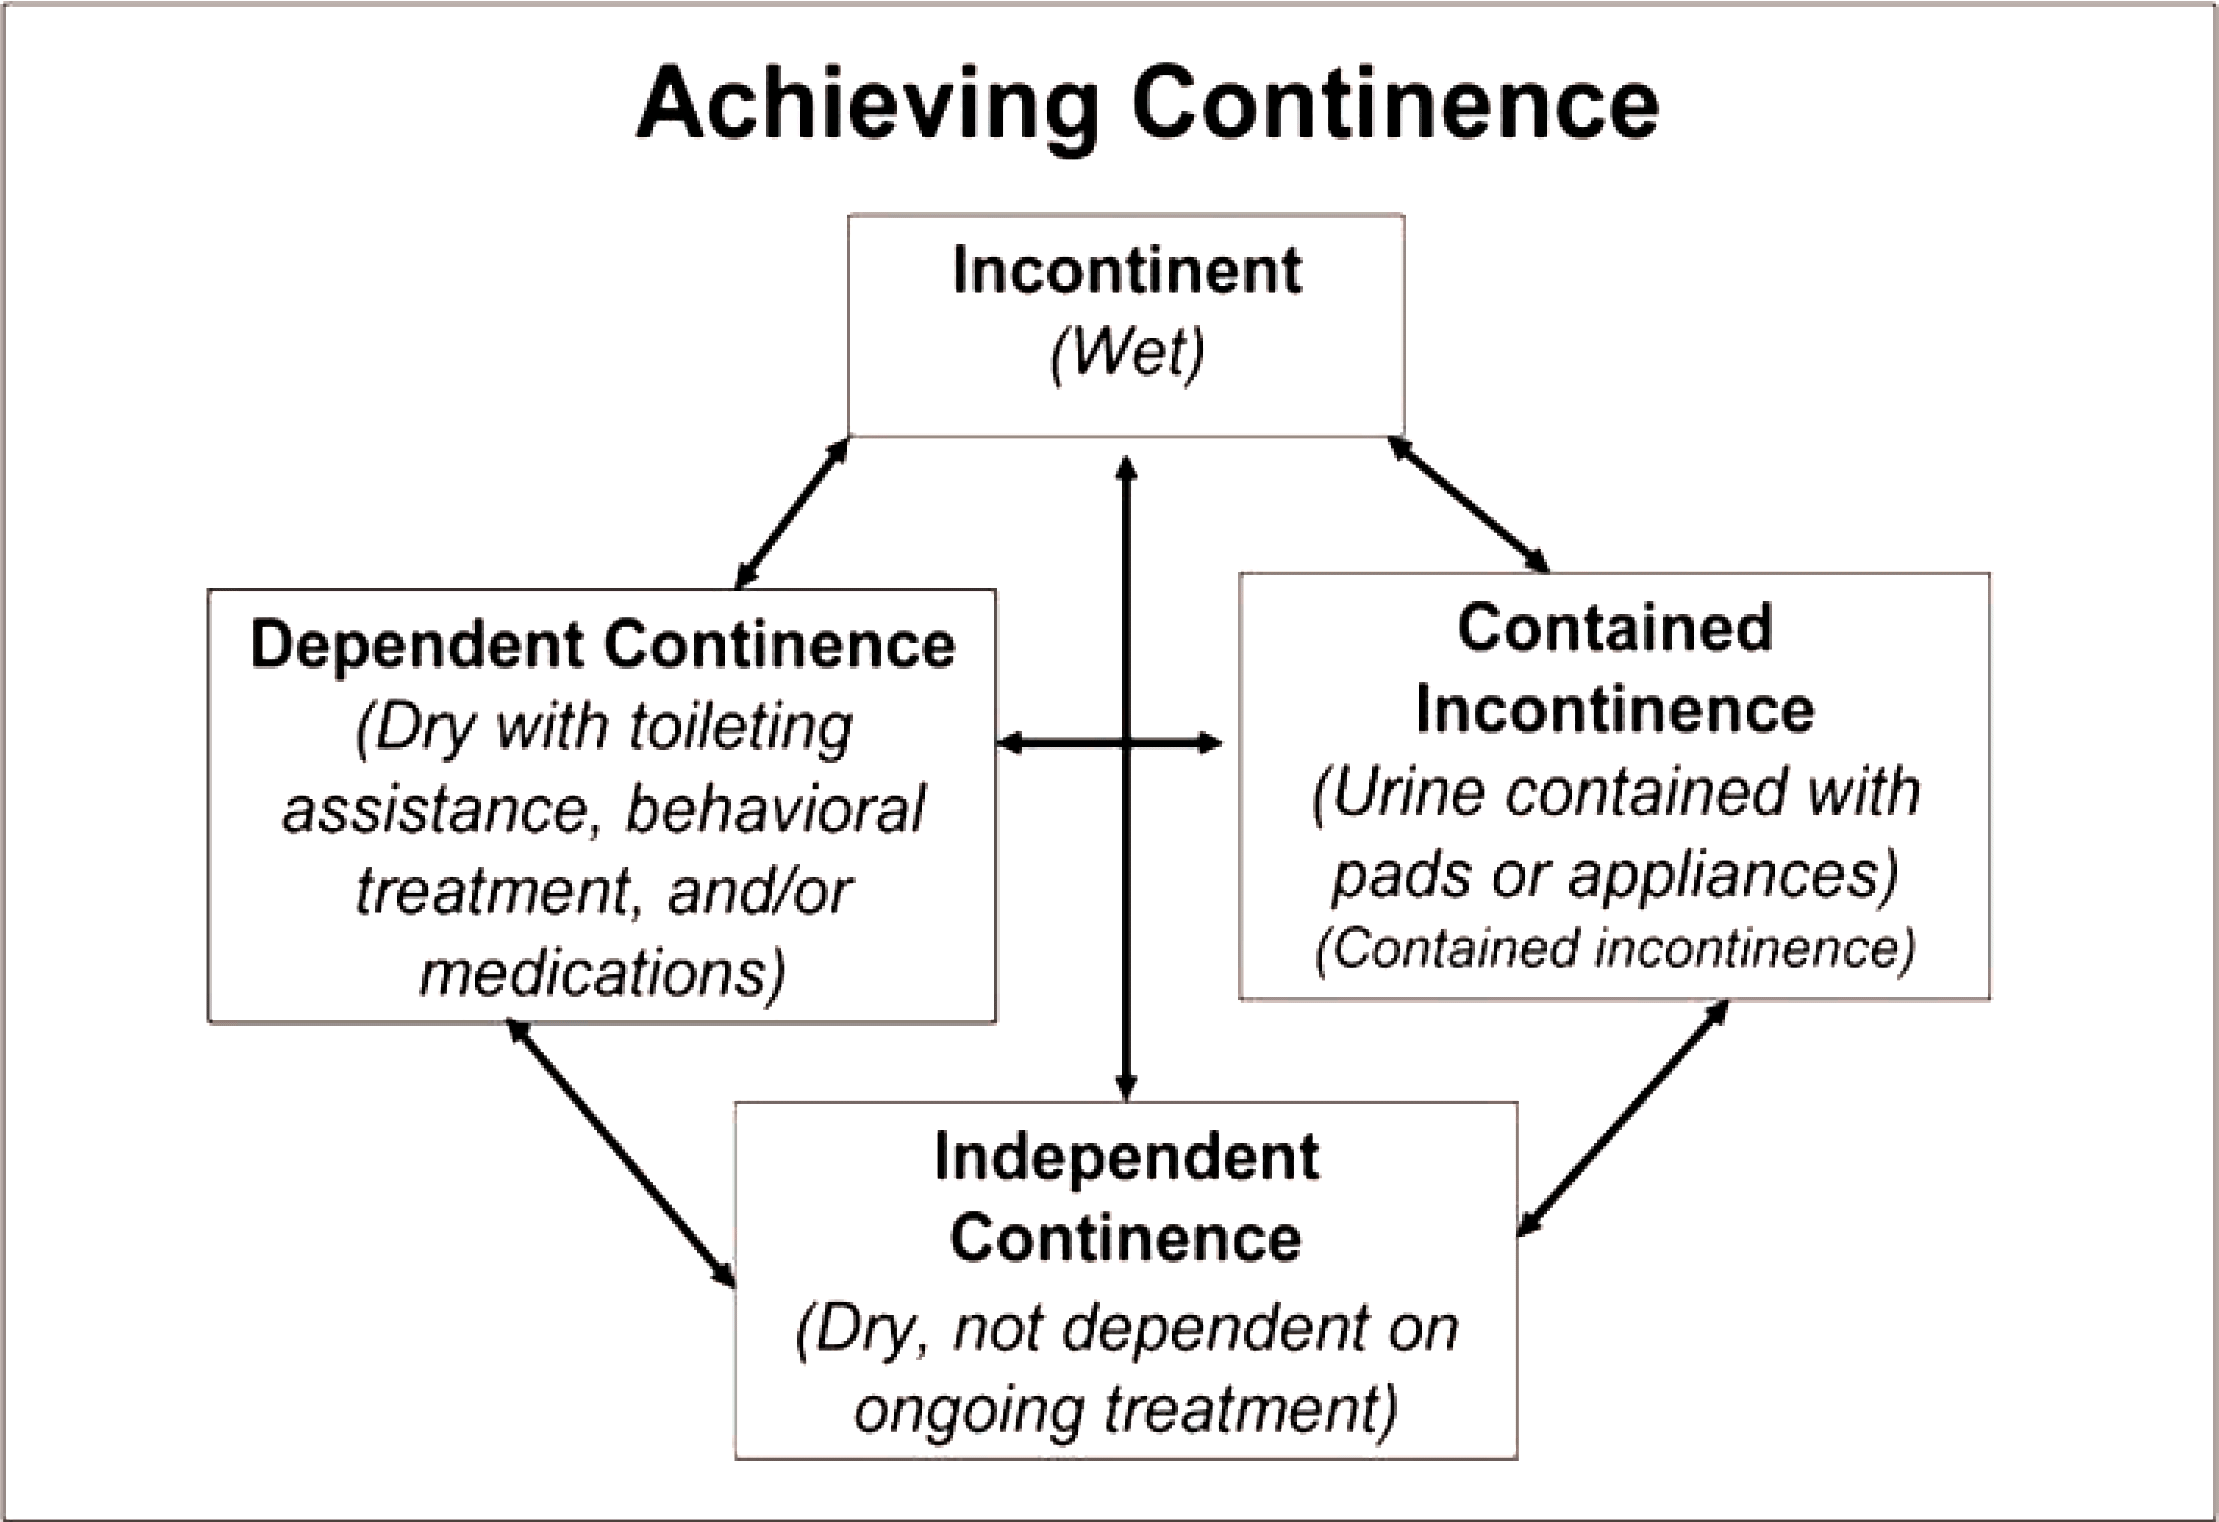 Figure 1. Achieving continence